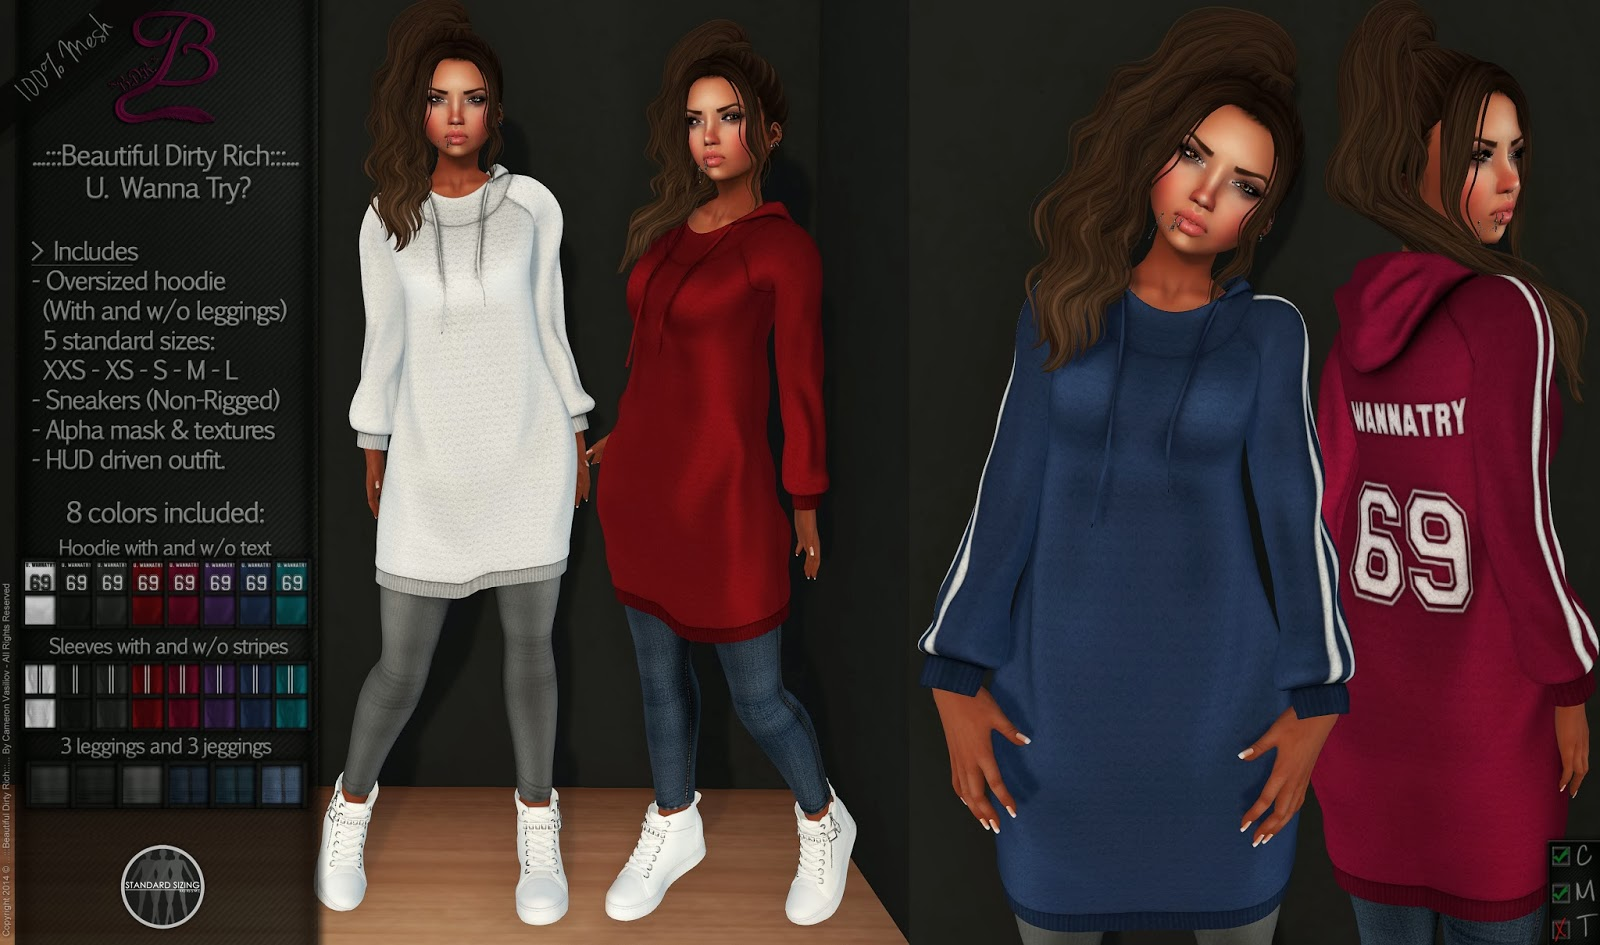 https://marketplace.secondlife.com/p/BDR-U-Wanna-Try-Complete-Outfit/5770968